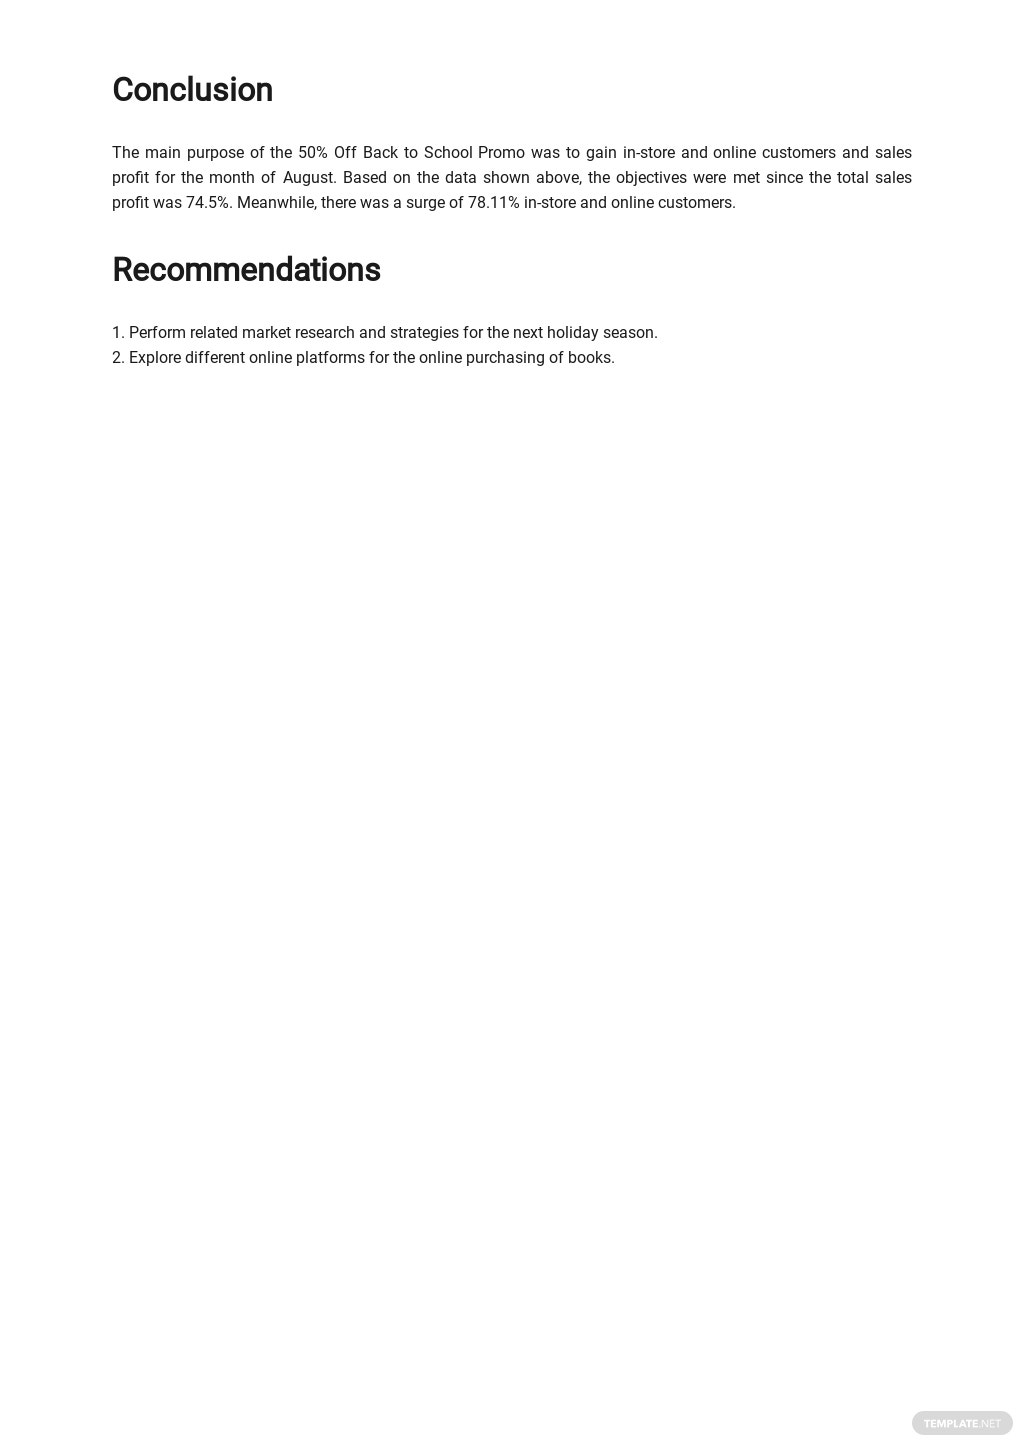 Free Business Report Cover Page Template 3.jpe